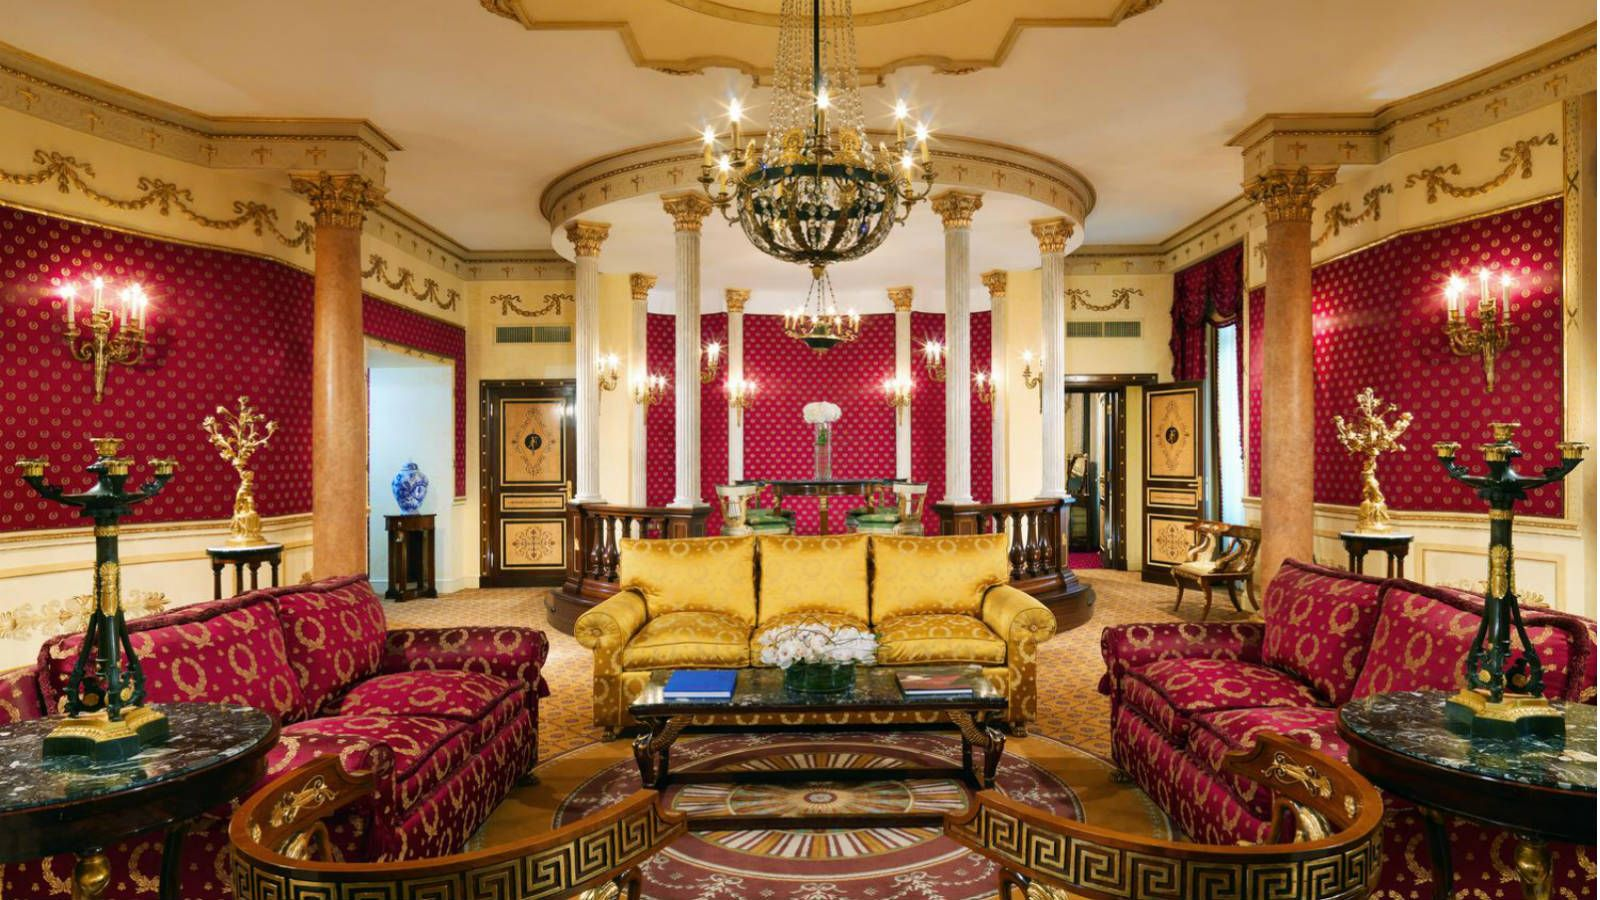 stackliving-luxurious-hotels-06-Westin-Excelsior-Rome-01-Imperial-Suite-living-room